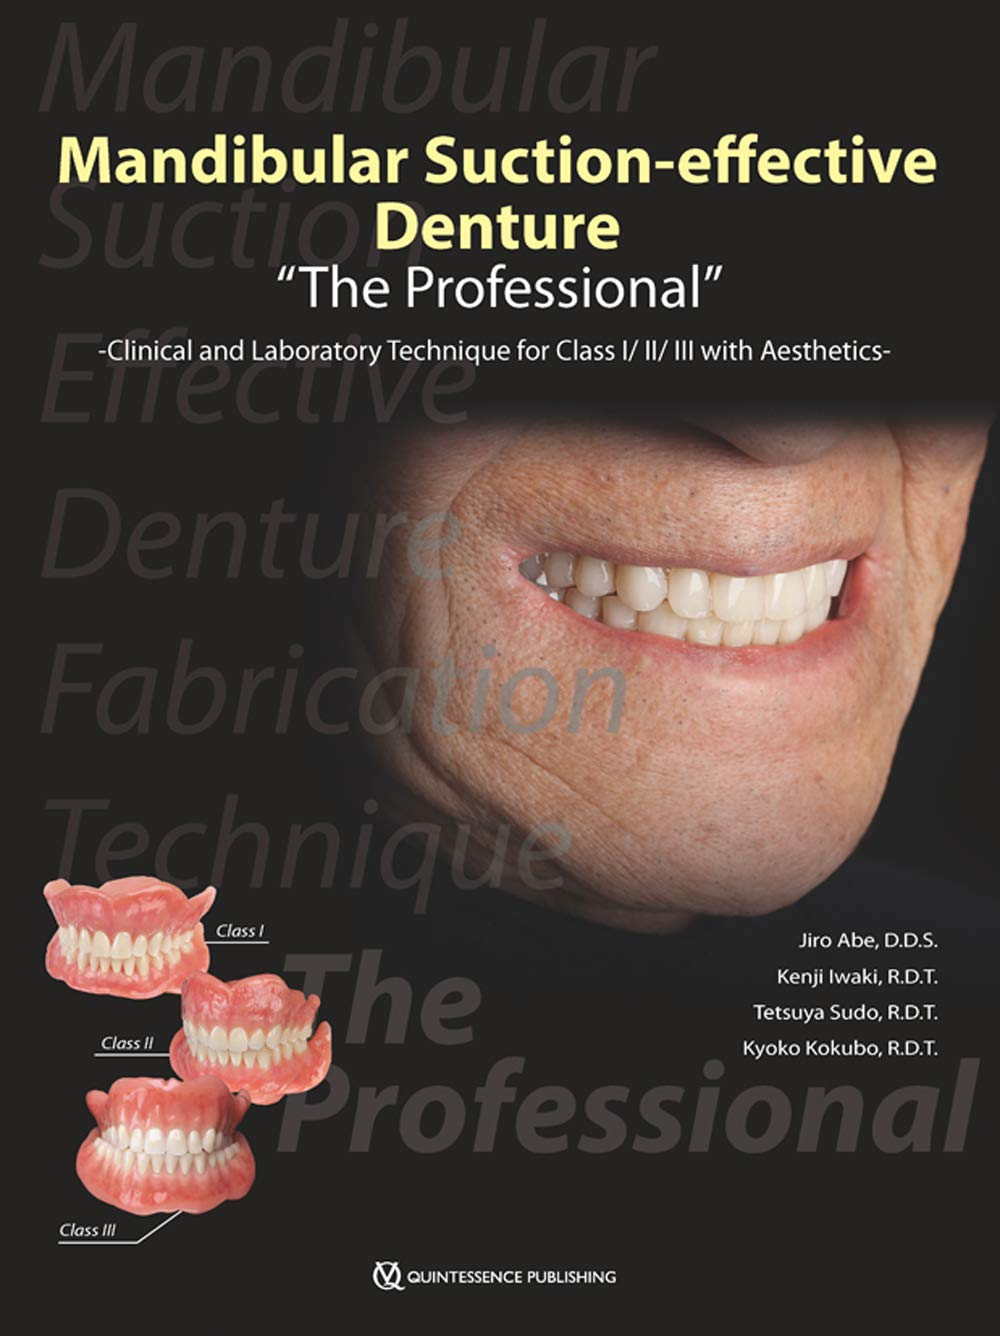 Mandibular Suction-effective Denture - Clinical and Laboratory Technique for Class I/II/III with Aesthetics